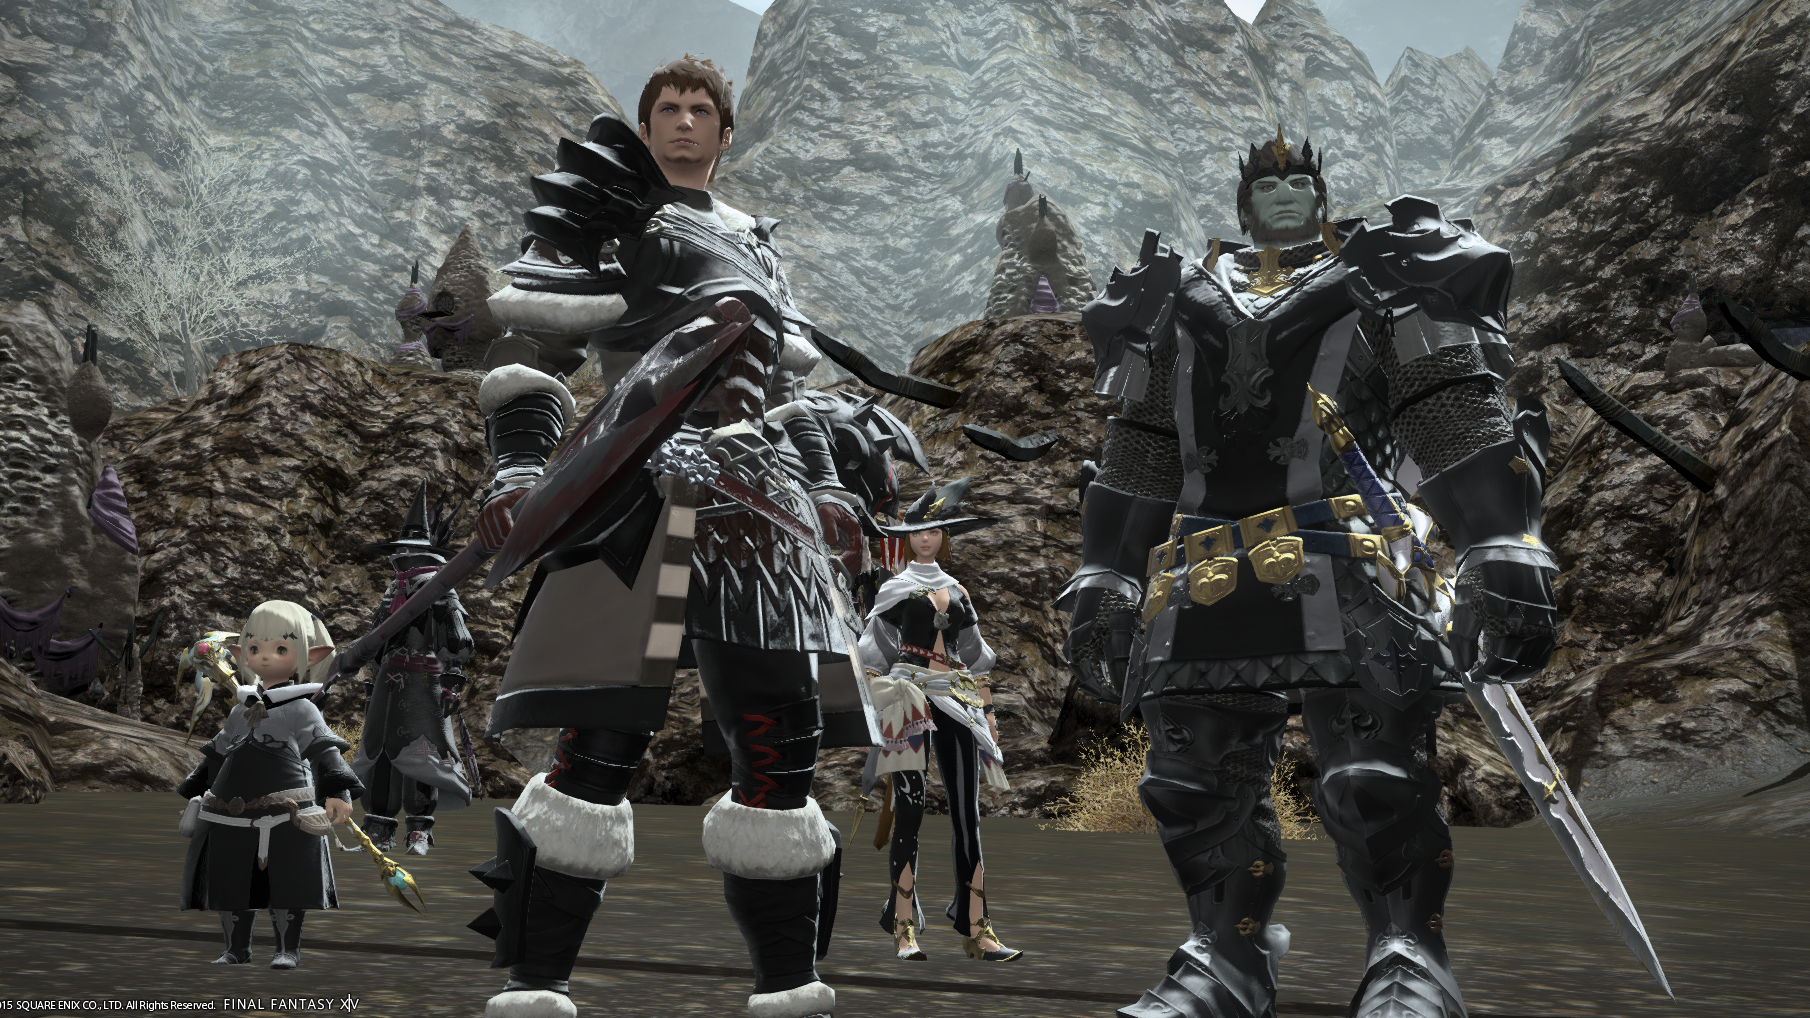 ff14 warrior - photo #19